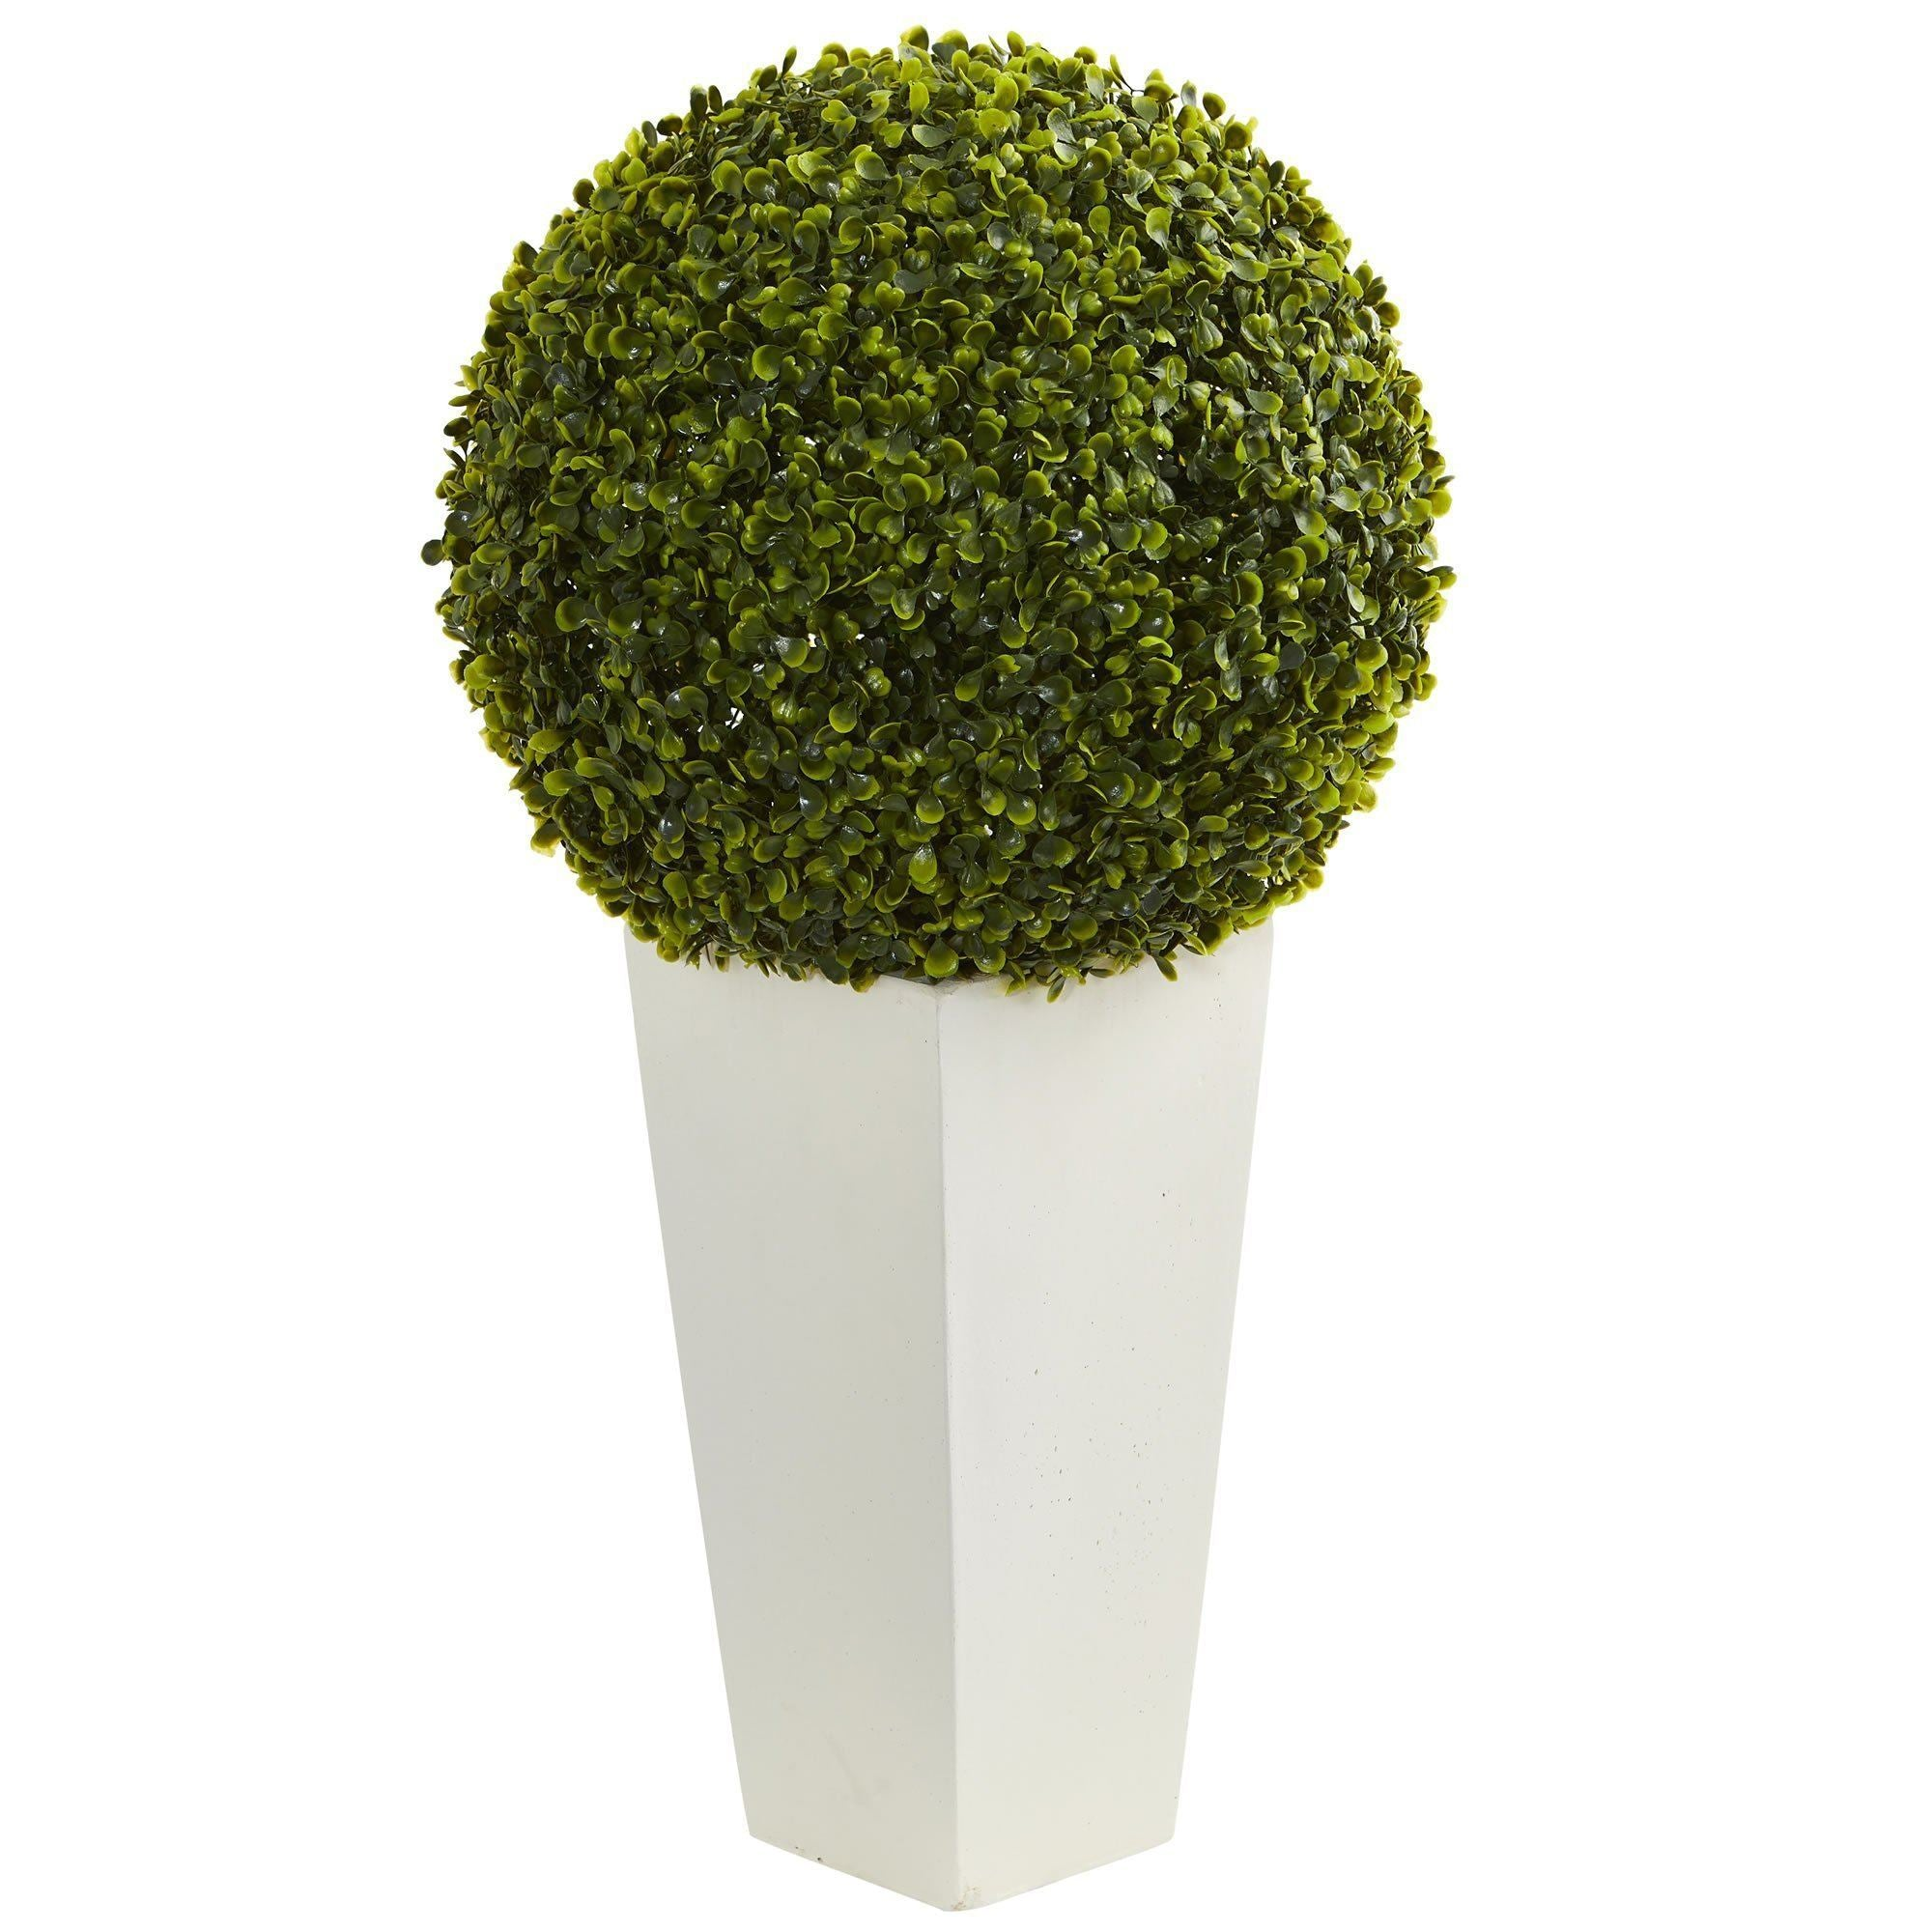 28 Boxwood Topiary Ball Artificial Plant In White Tower Planter Indoor Outdoor Nearly Natural